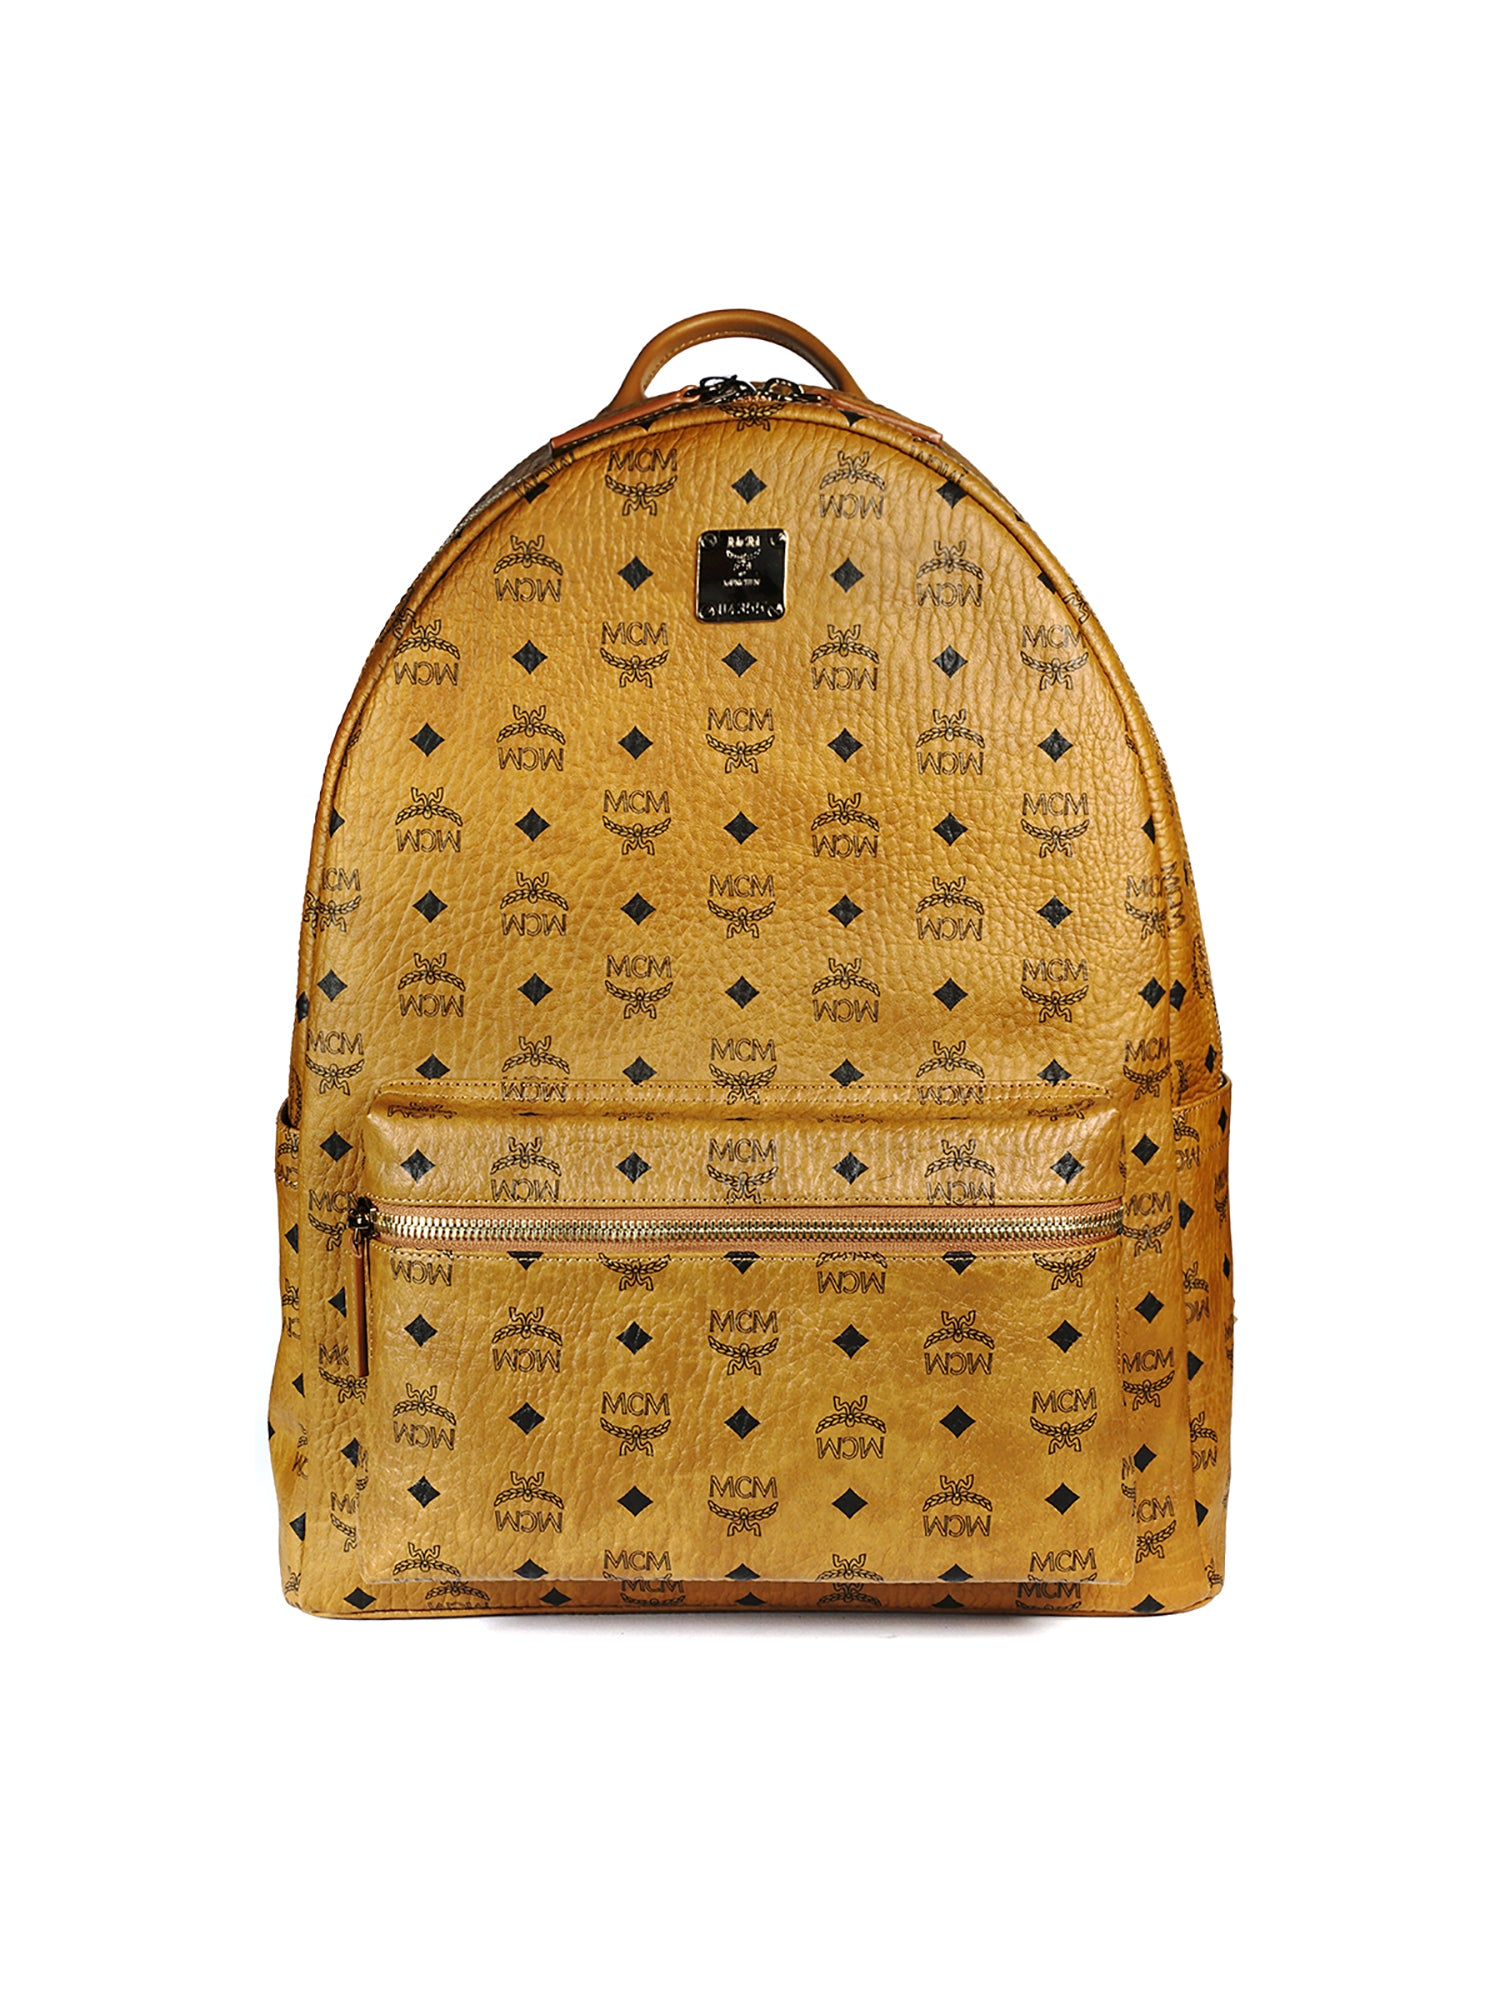 STARK BACKPACK LRG CO, 001